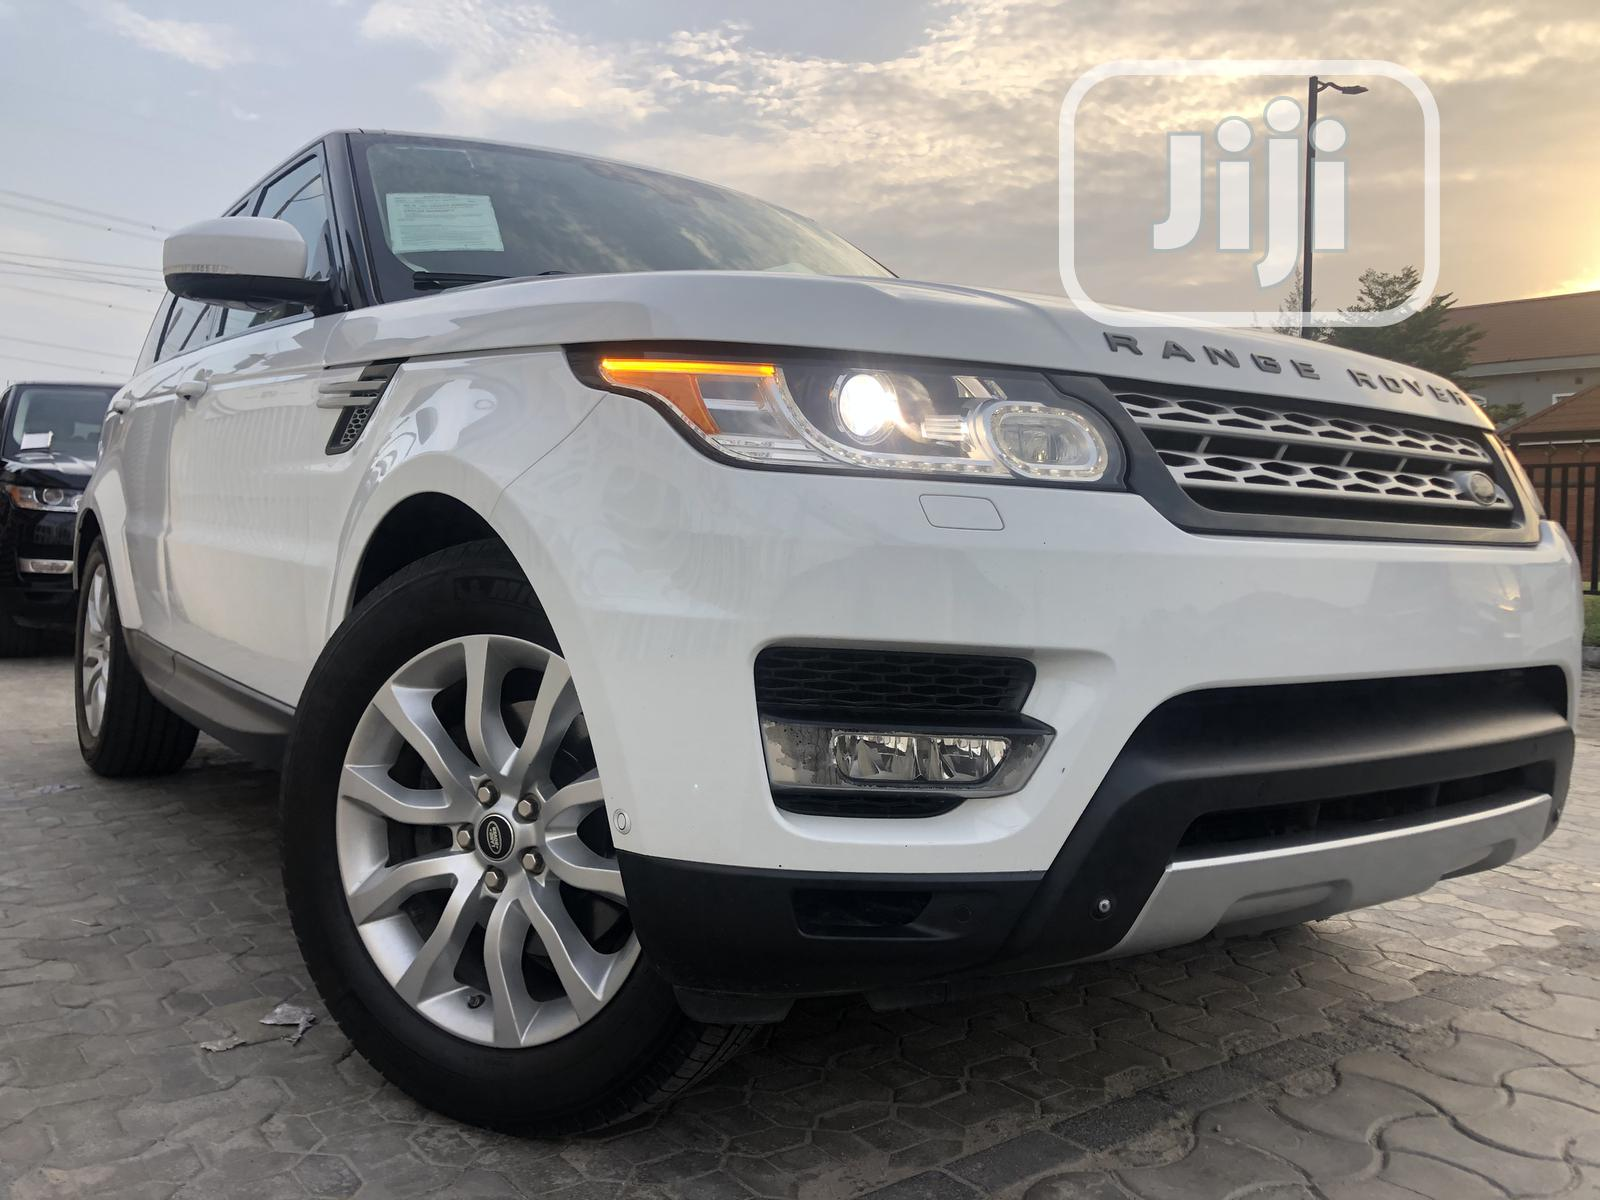 Land Rover Range Rover Sport 2014 HSE 4x4 (3.0L 6cyl 8A) White